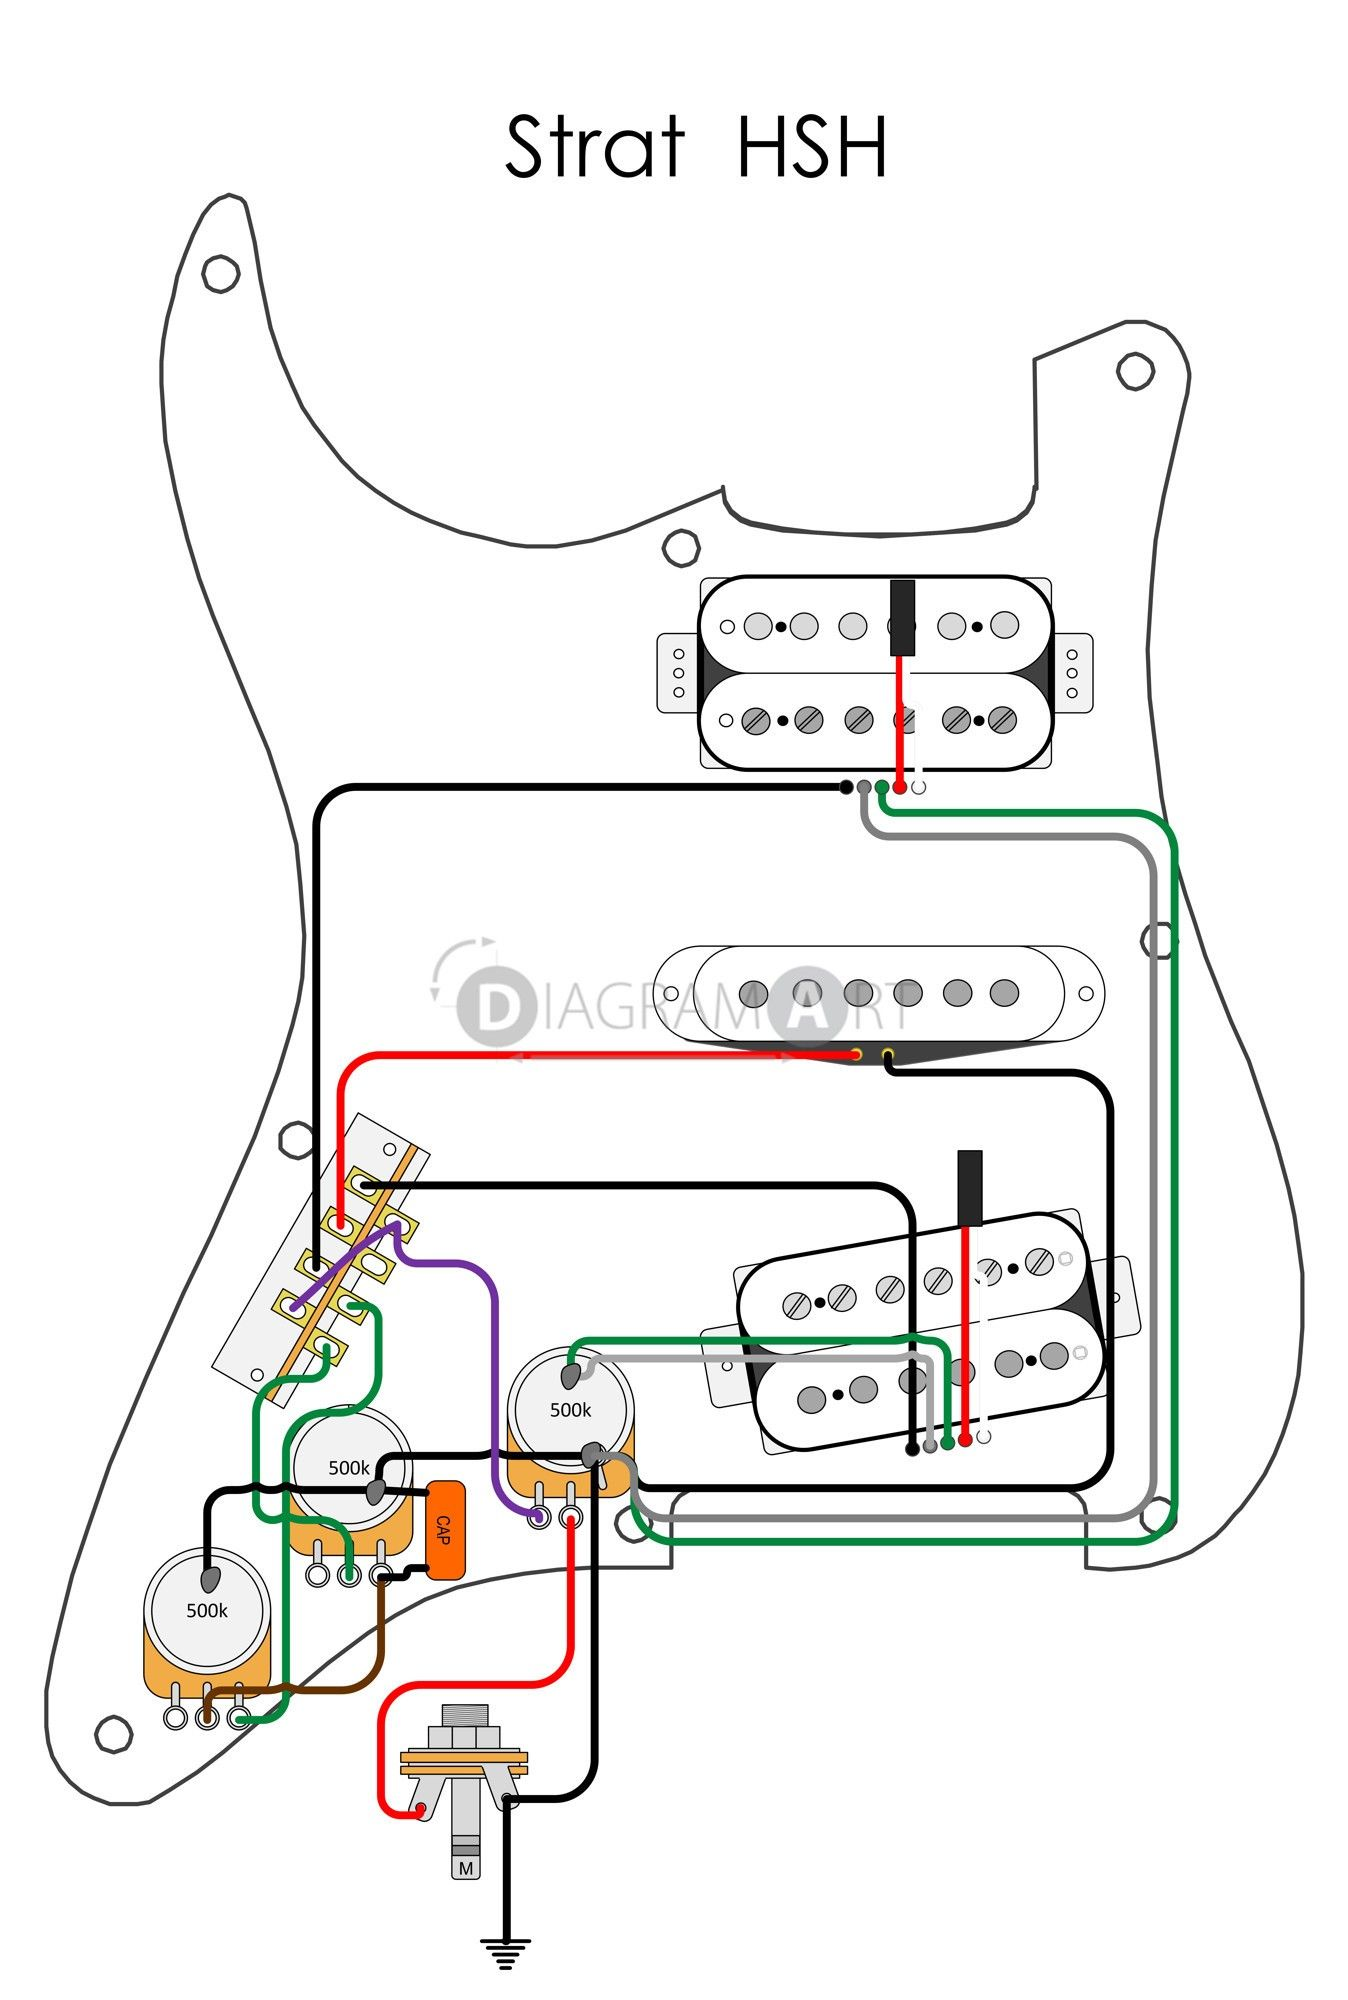 Wiring Diagram Fender Strat 5 Way Switch New Sss Strat S1